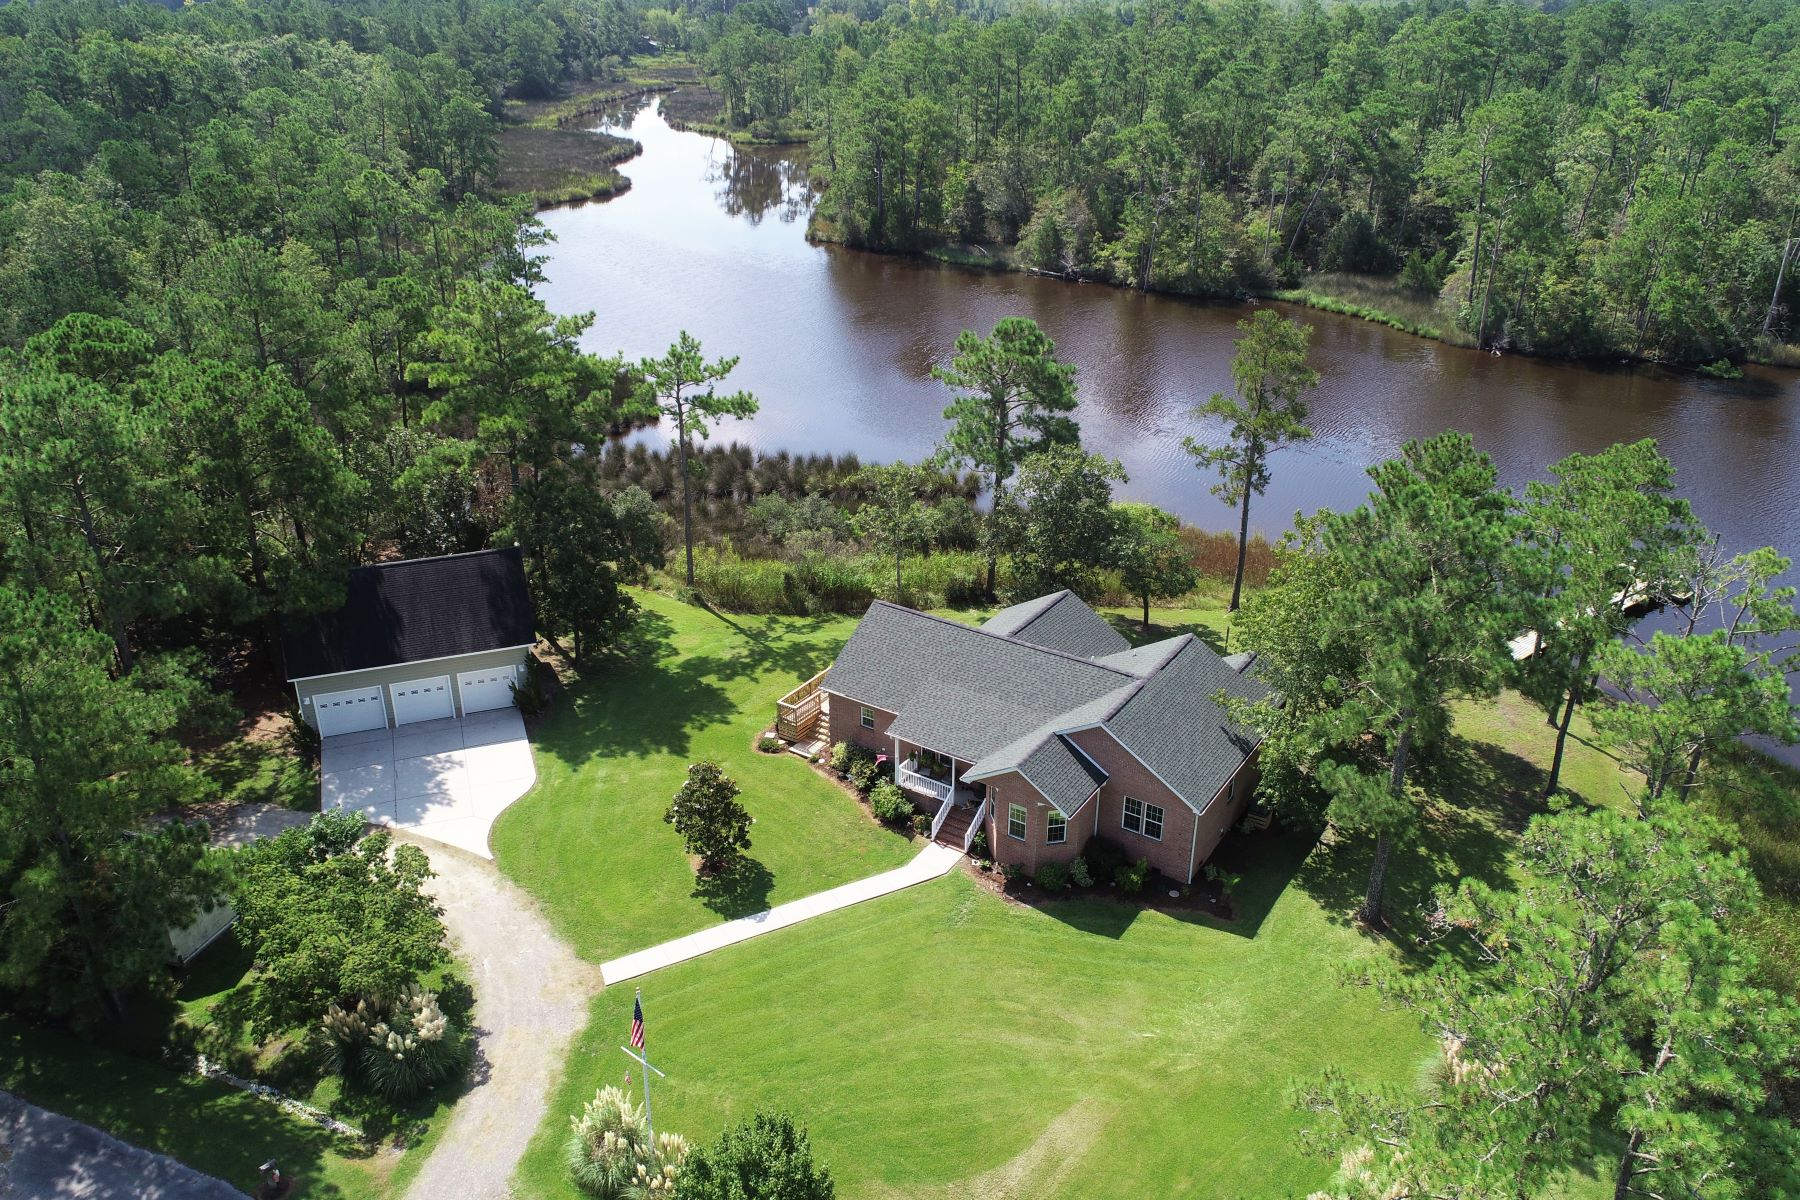 Single Family Homes for Sale at Attractive Waterfront Home 201 Trawler Lane Merritt, North Carolina 28556 United States